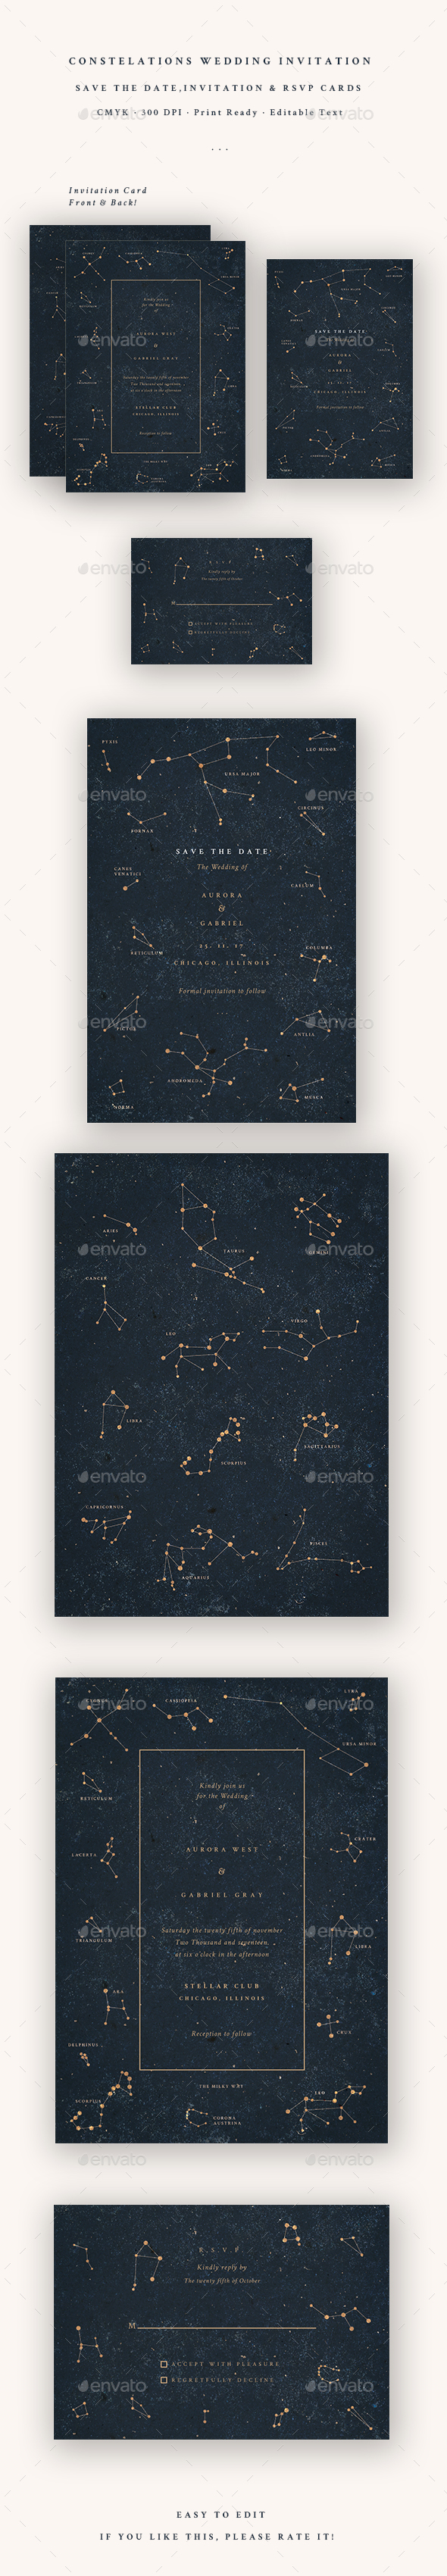 Constellations Wedding Invitation - Cards & Invites Print Templates